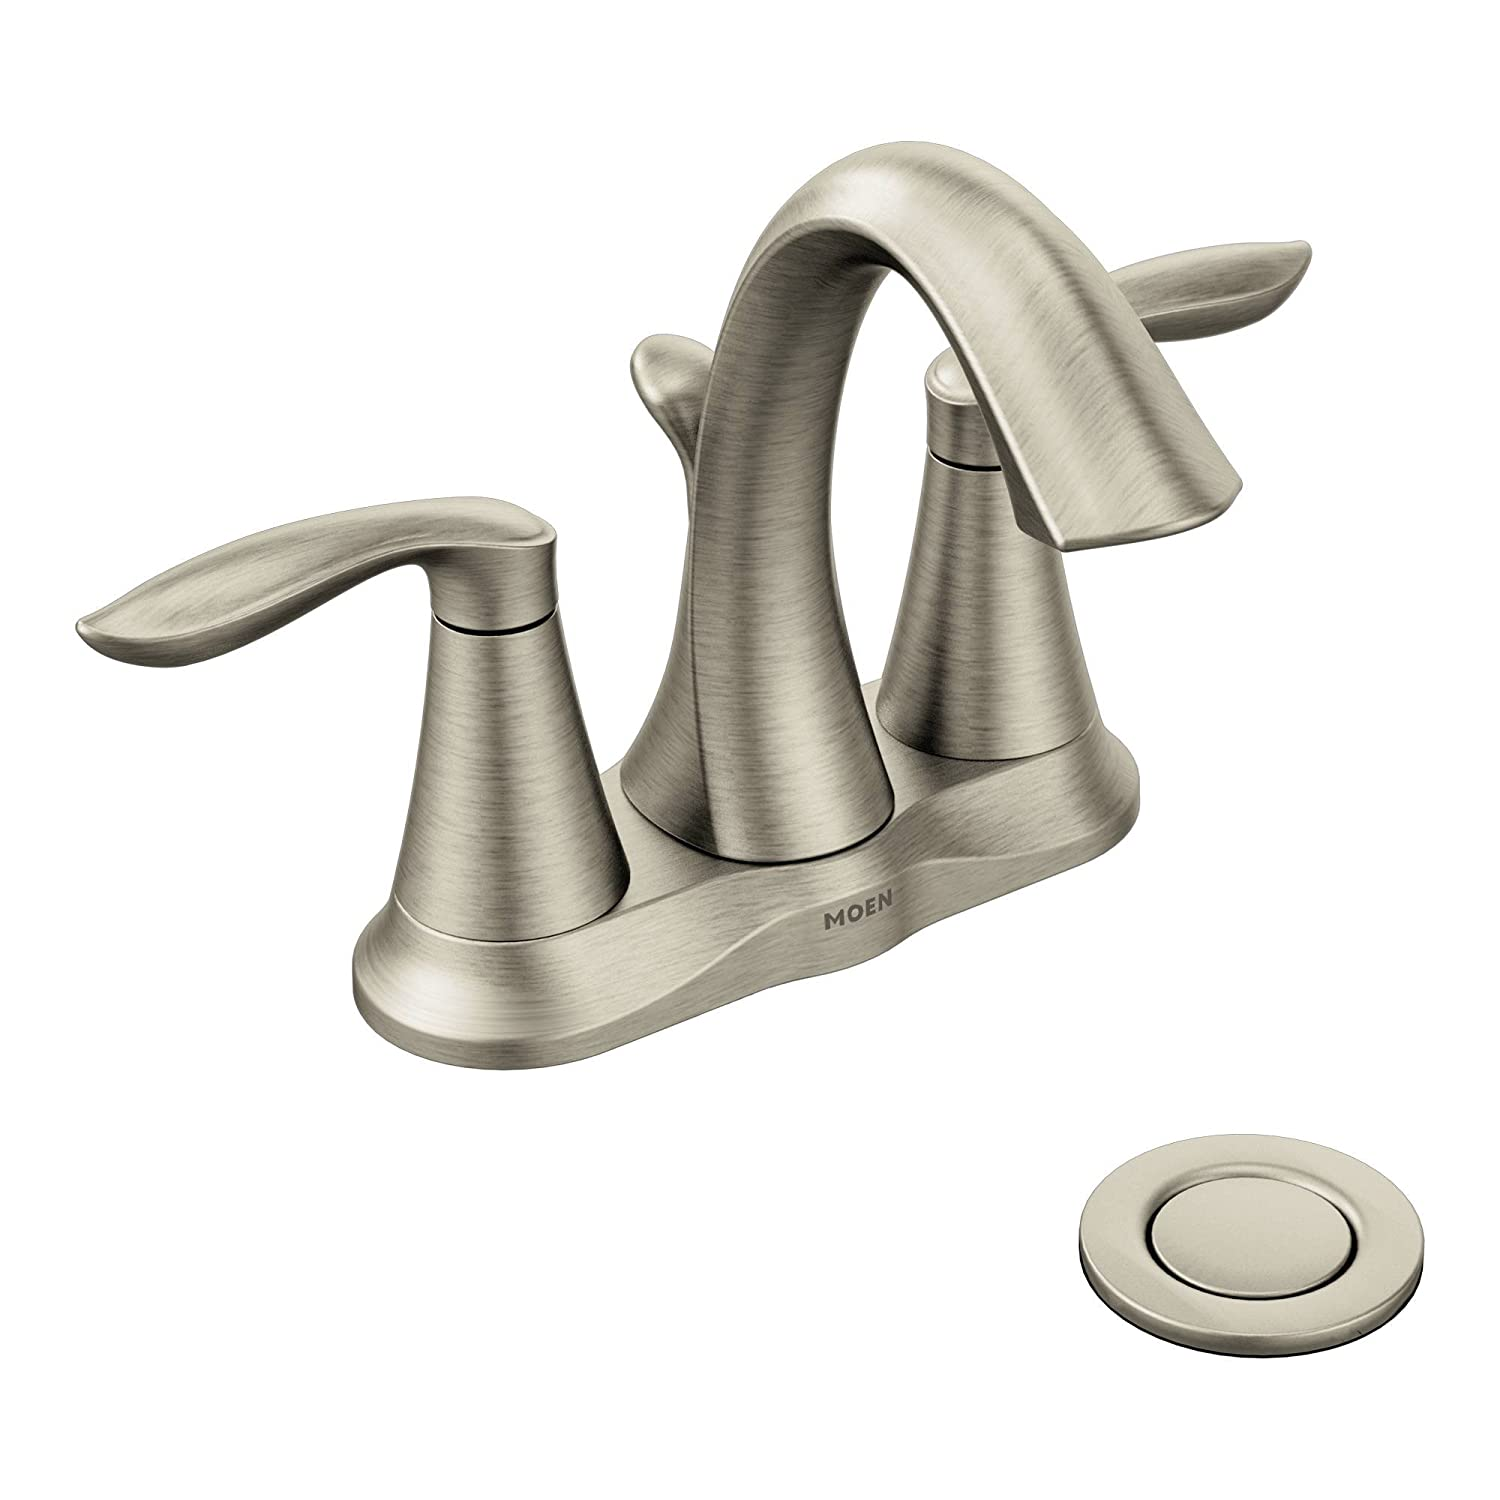 Amazon.com: Moen Eva Two-Handle Centerset Bathroom Faucet with ...